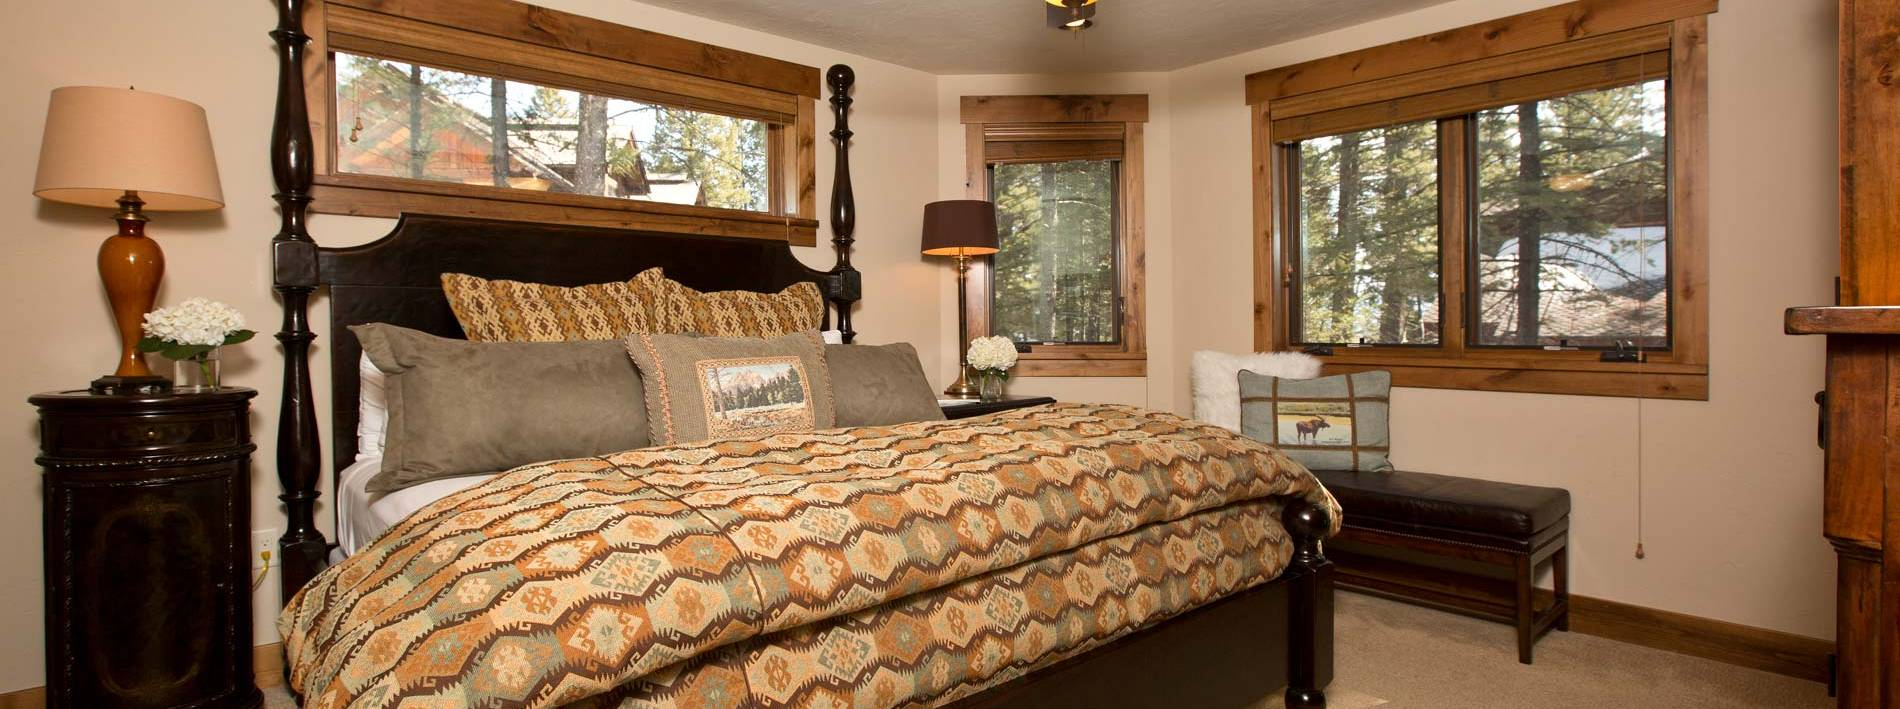 Spacious bedroom in the Blue Moose Lodge in Jackson Hole